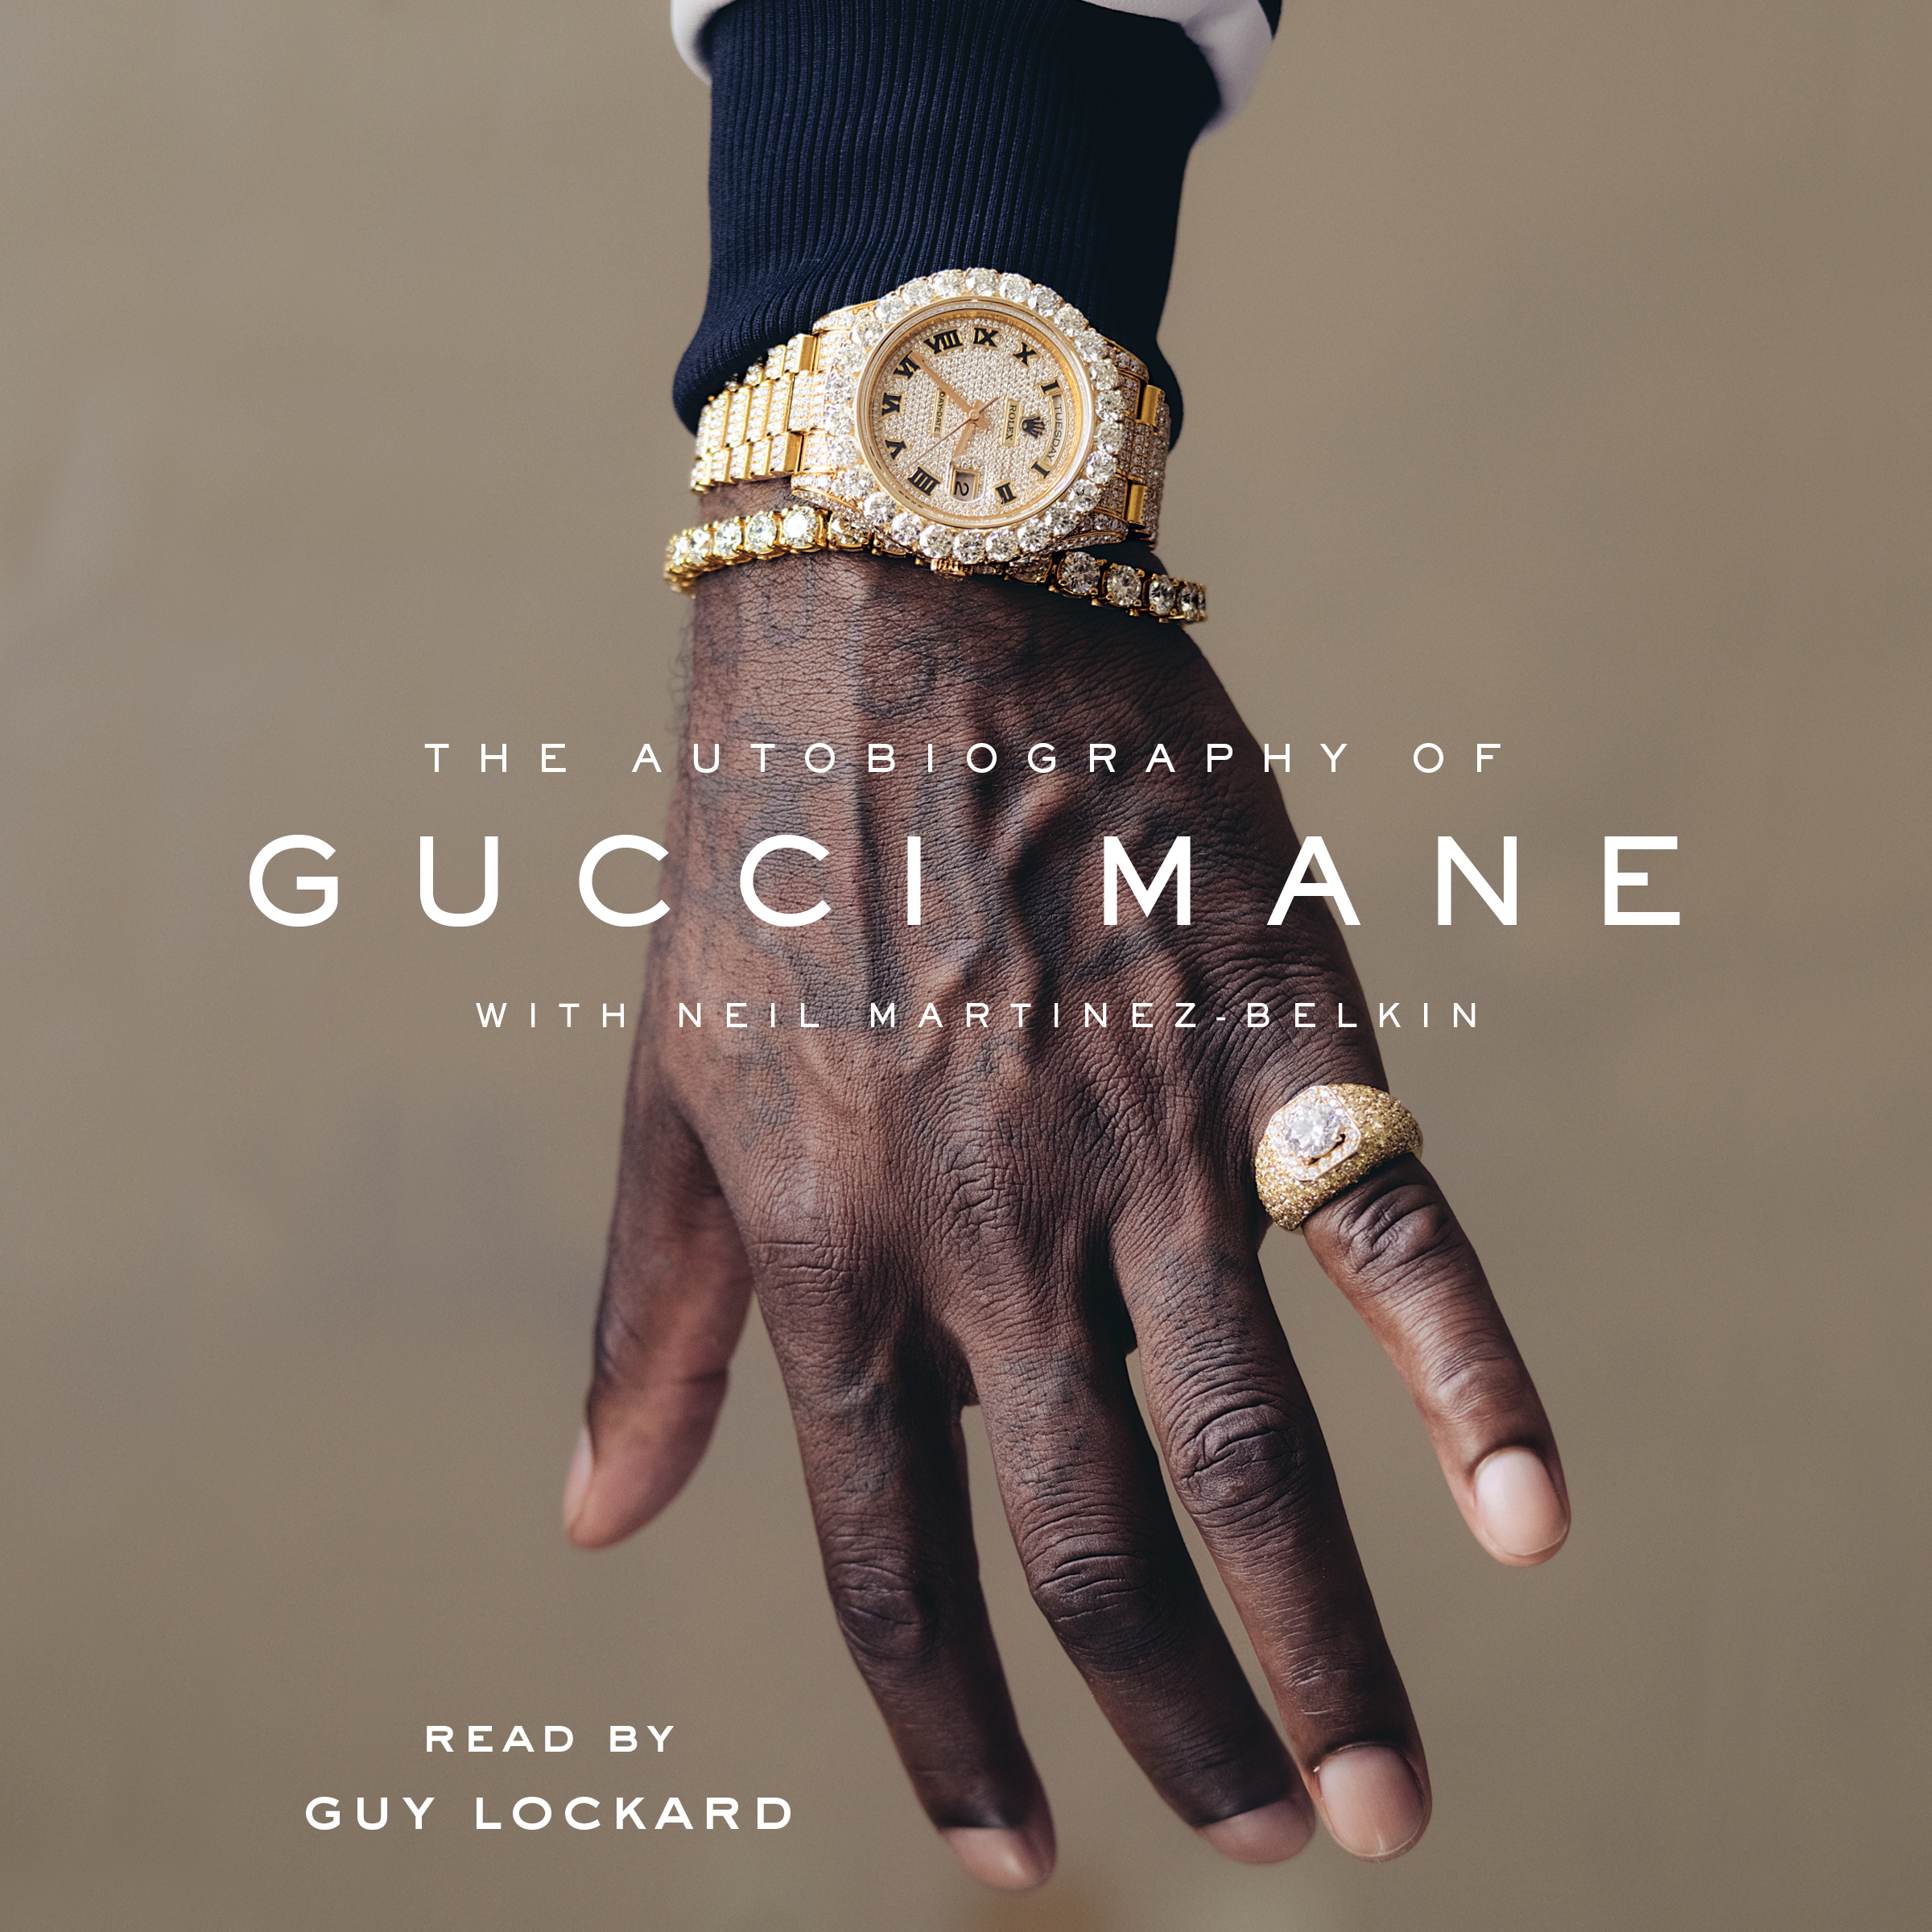 The autobiography of gucci mane 9781508248910 hr